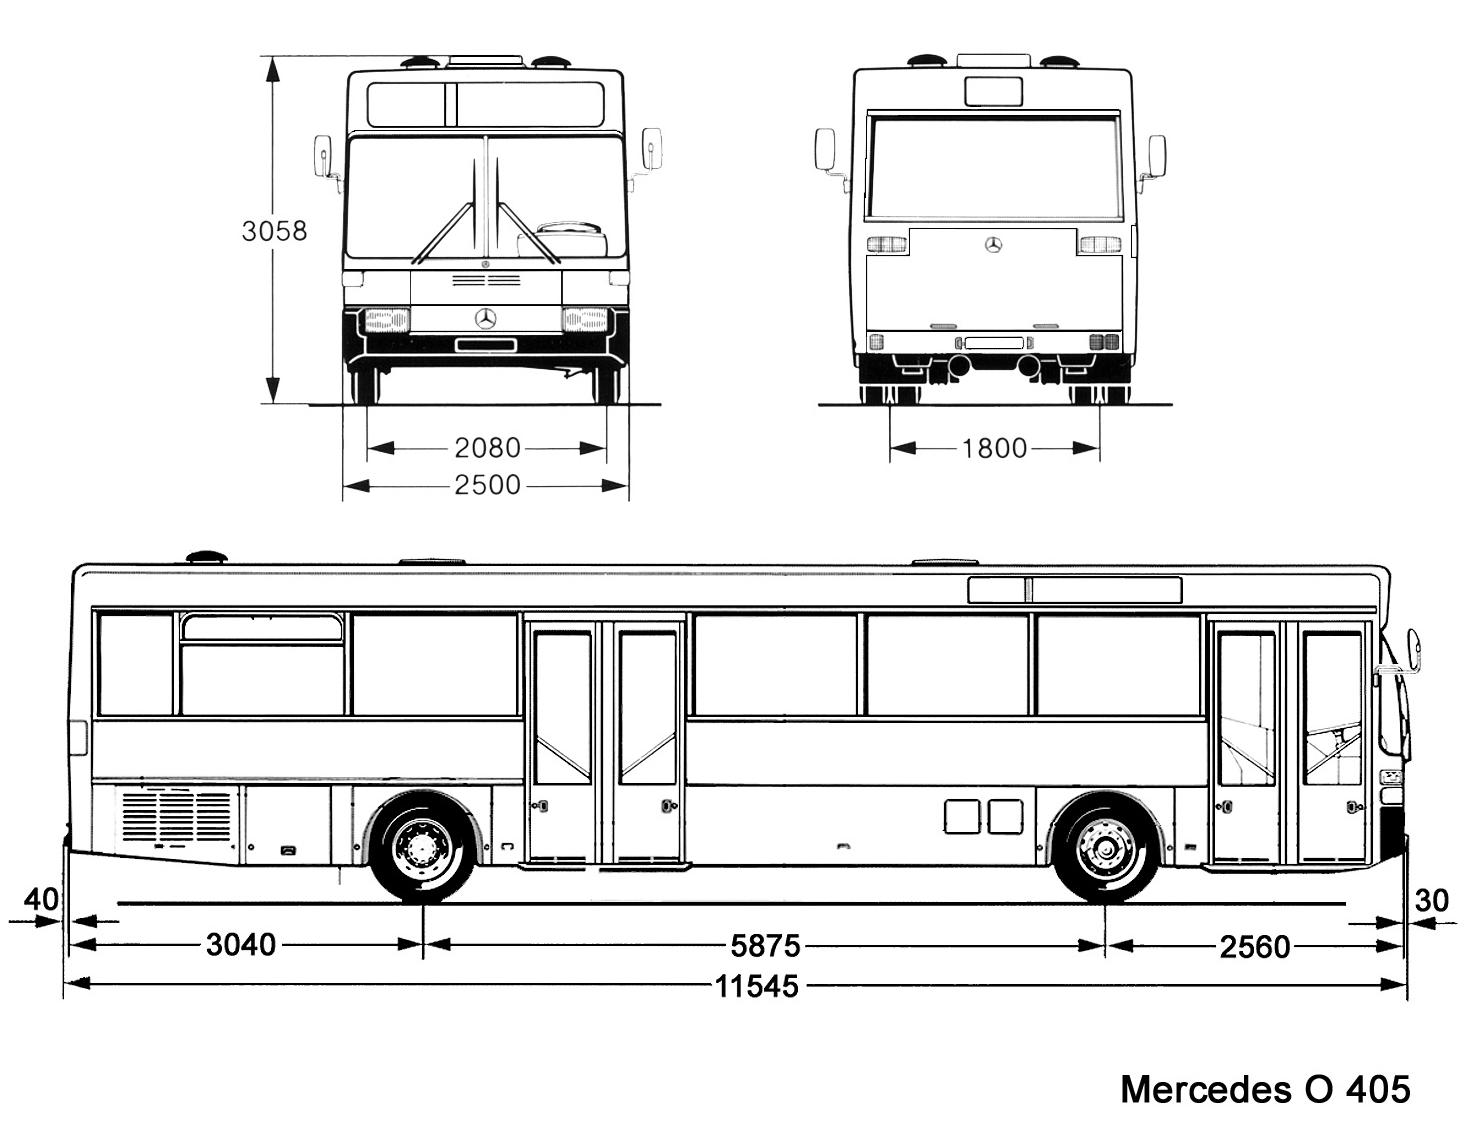 Mercedes-Benz O405 blueprint